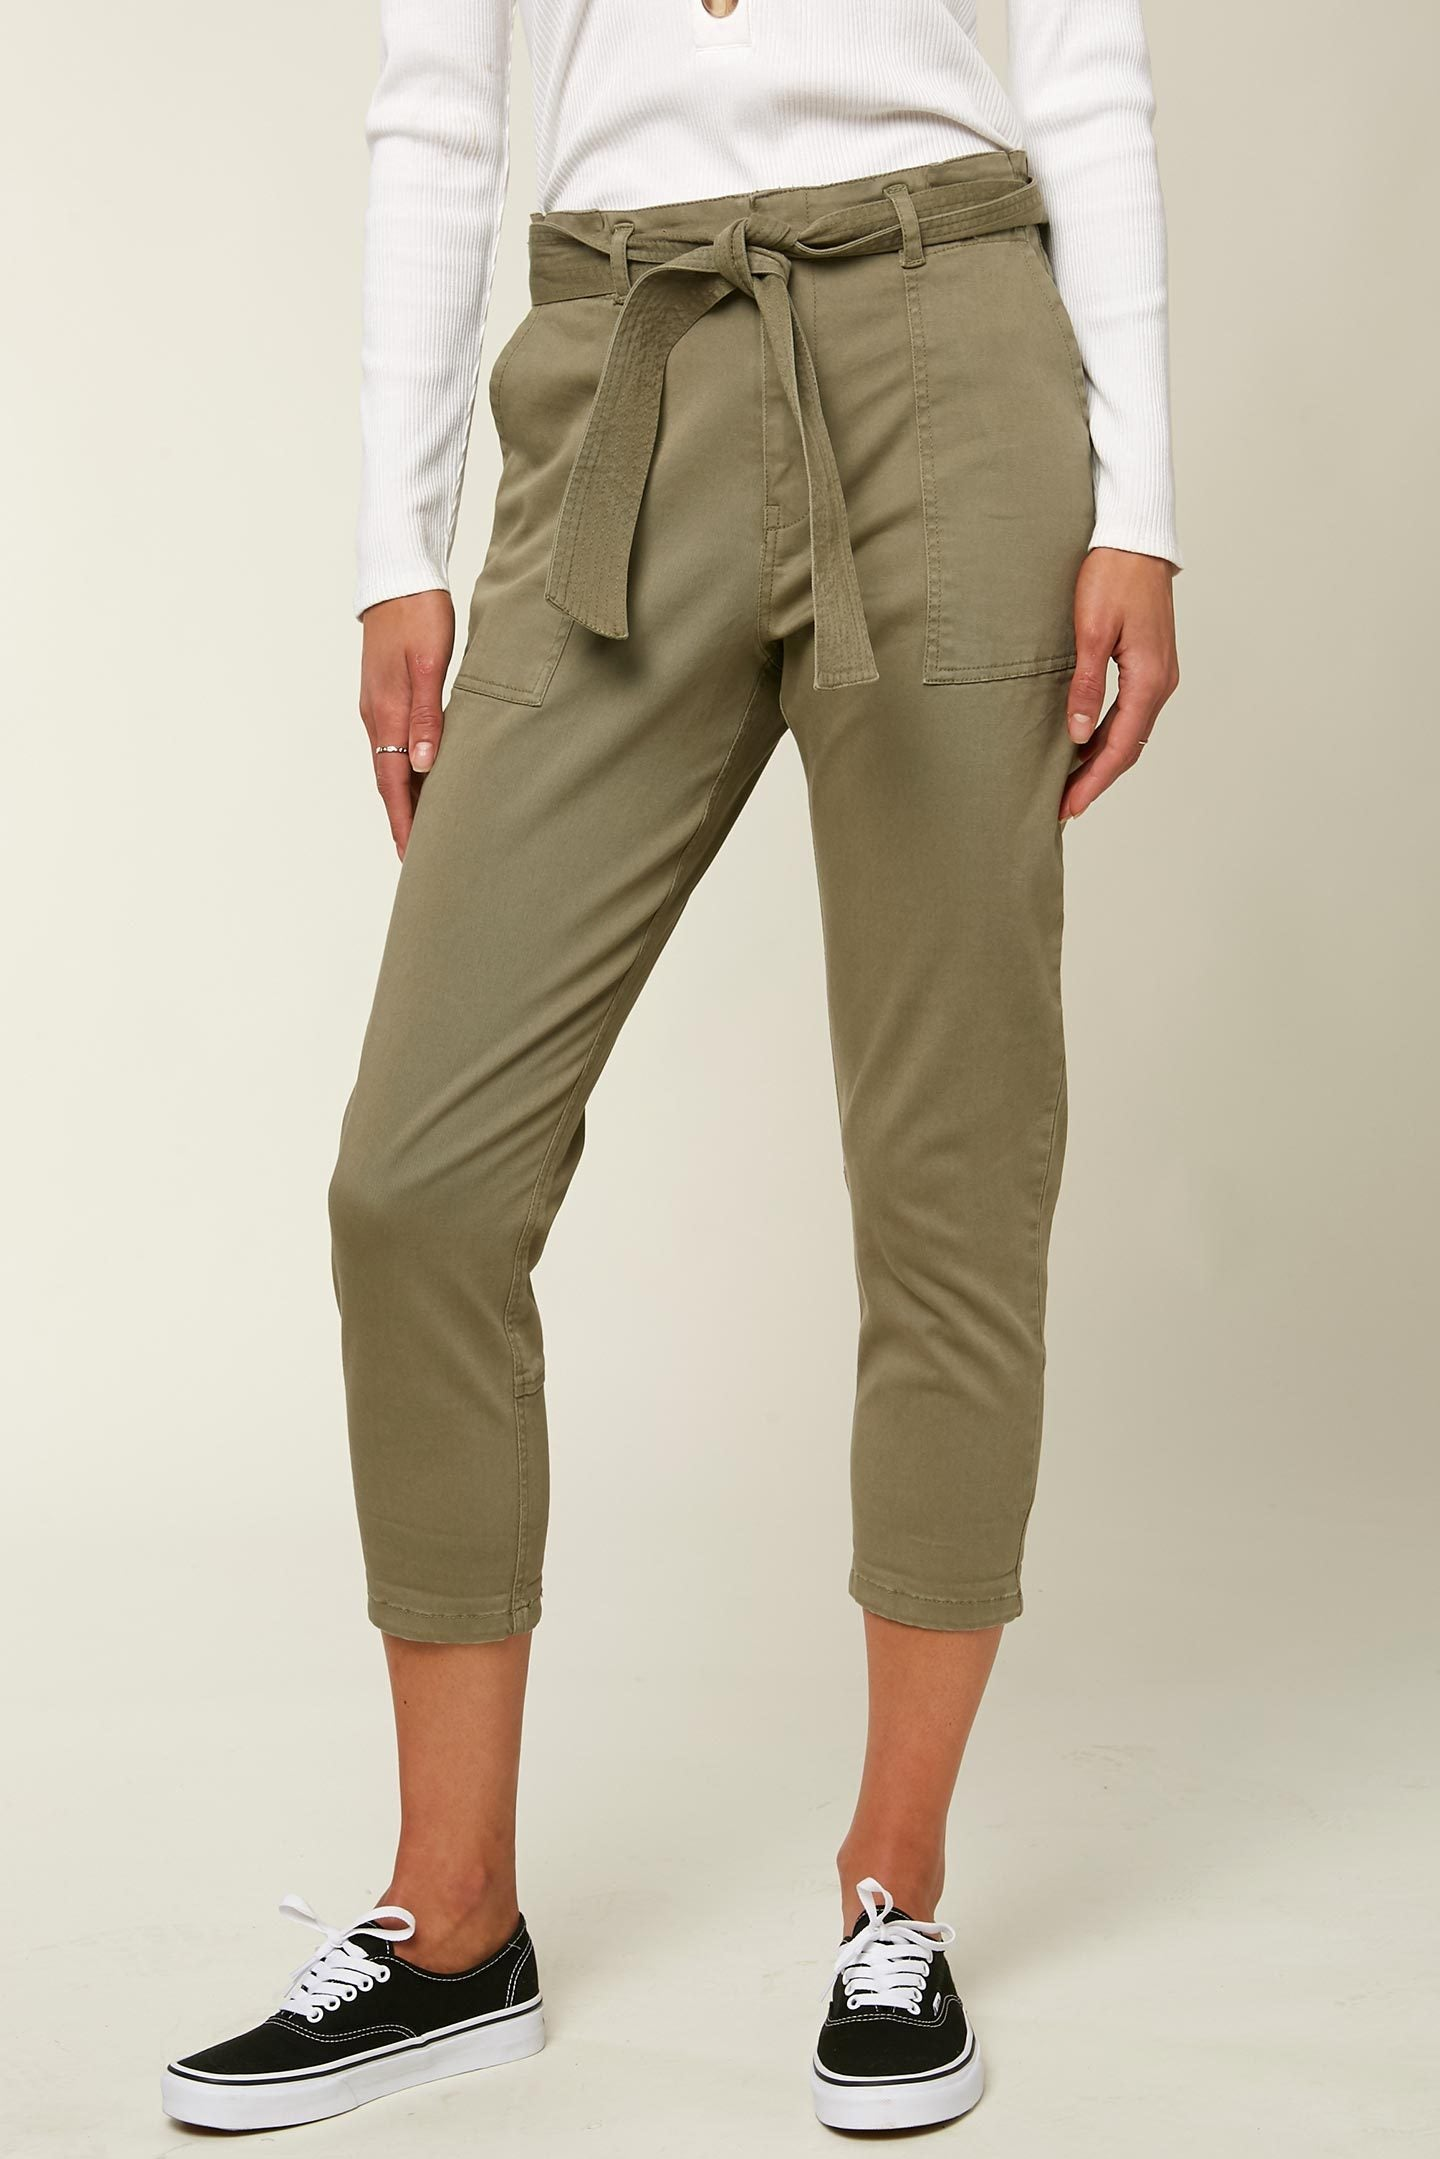 O'Neill Dillon Pants